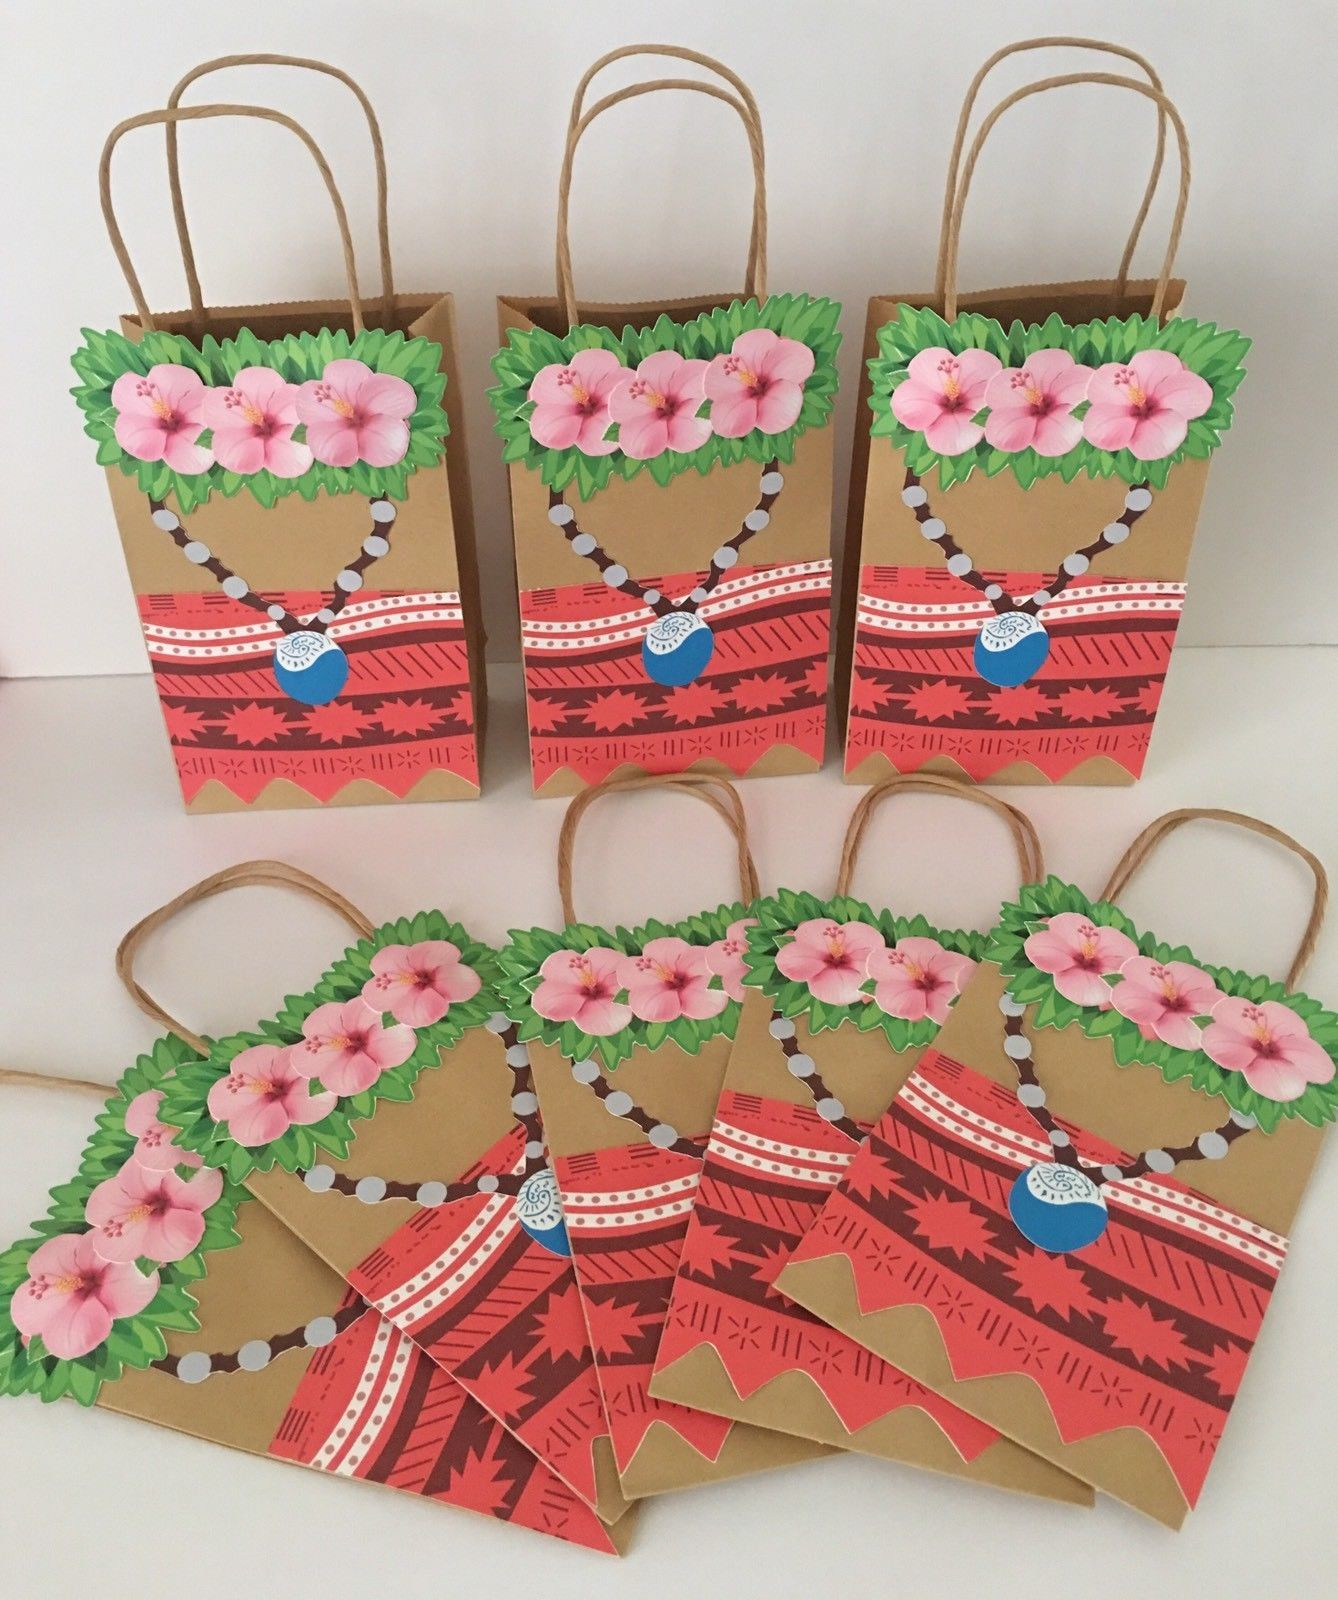 Custom Moana Party Bags Paper Gift Each Bag Measures 5 1 4 X2 3 X8 2 H CANDY NOT